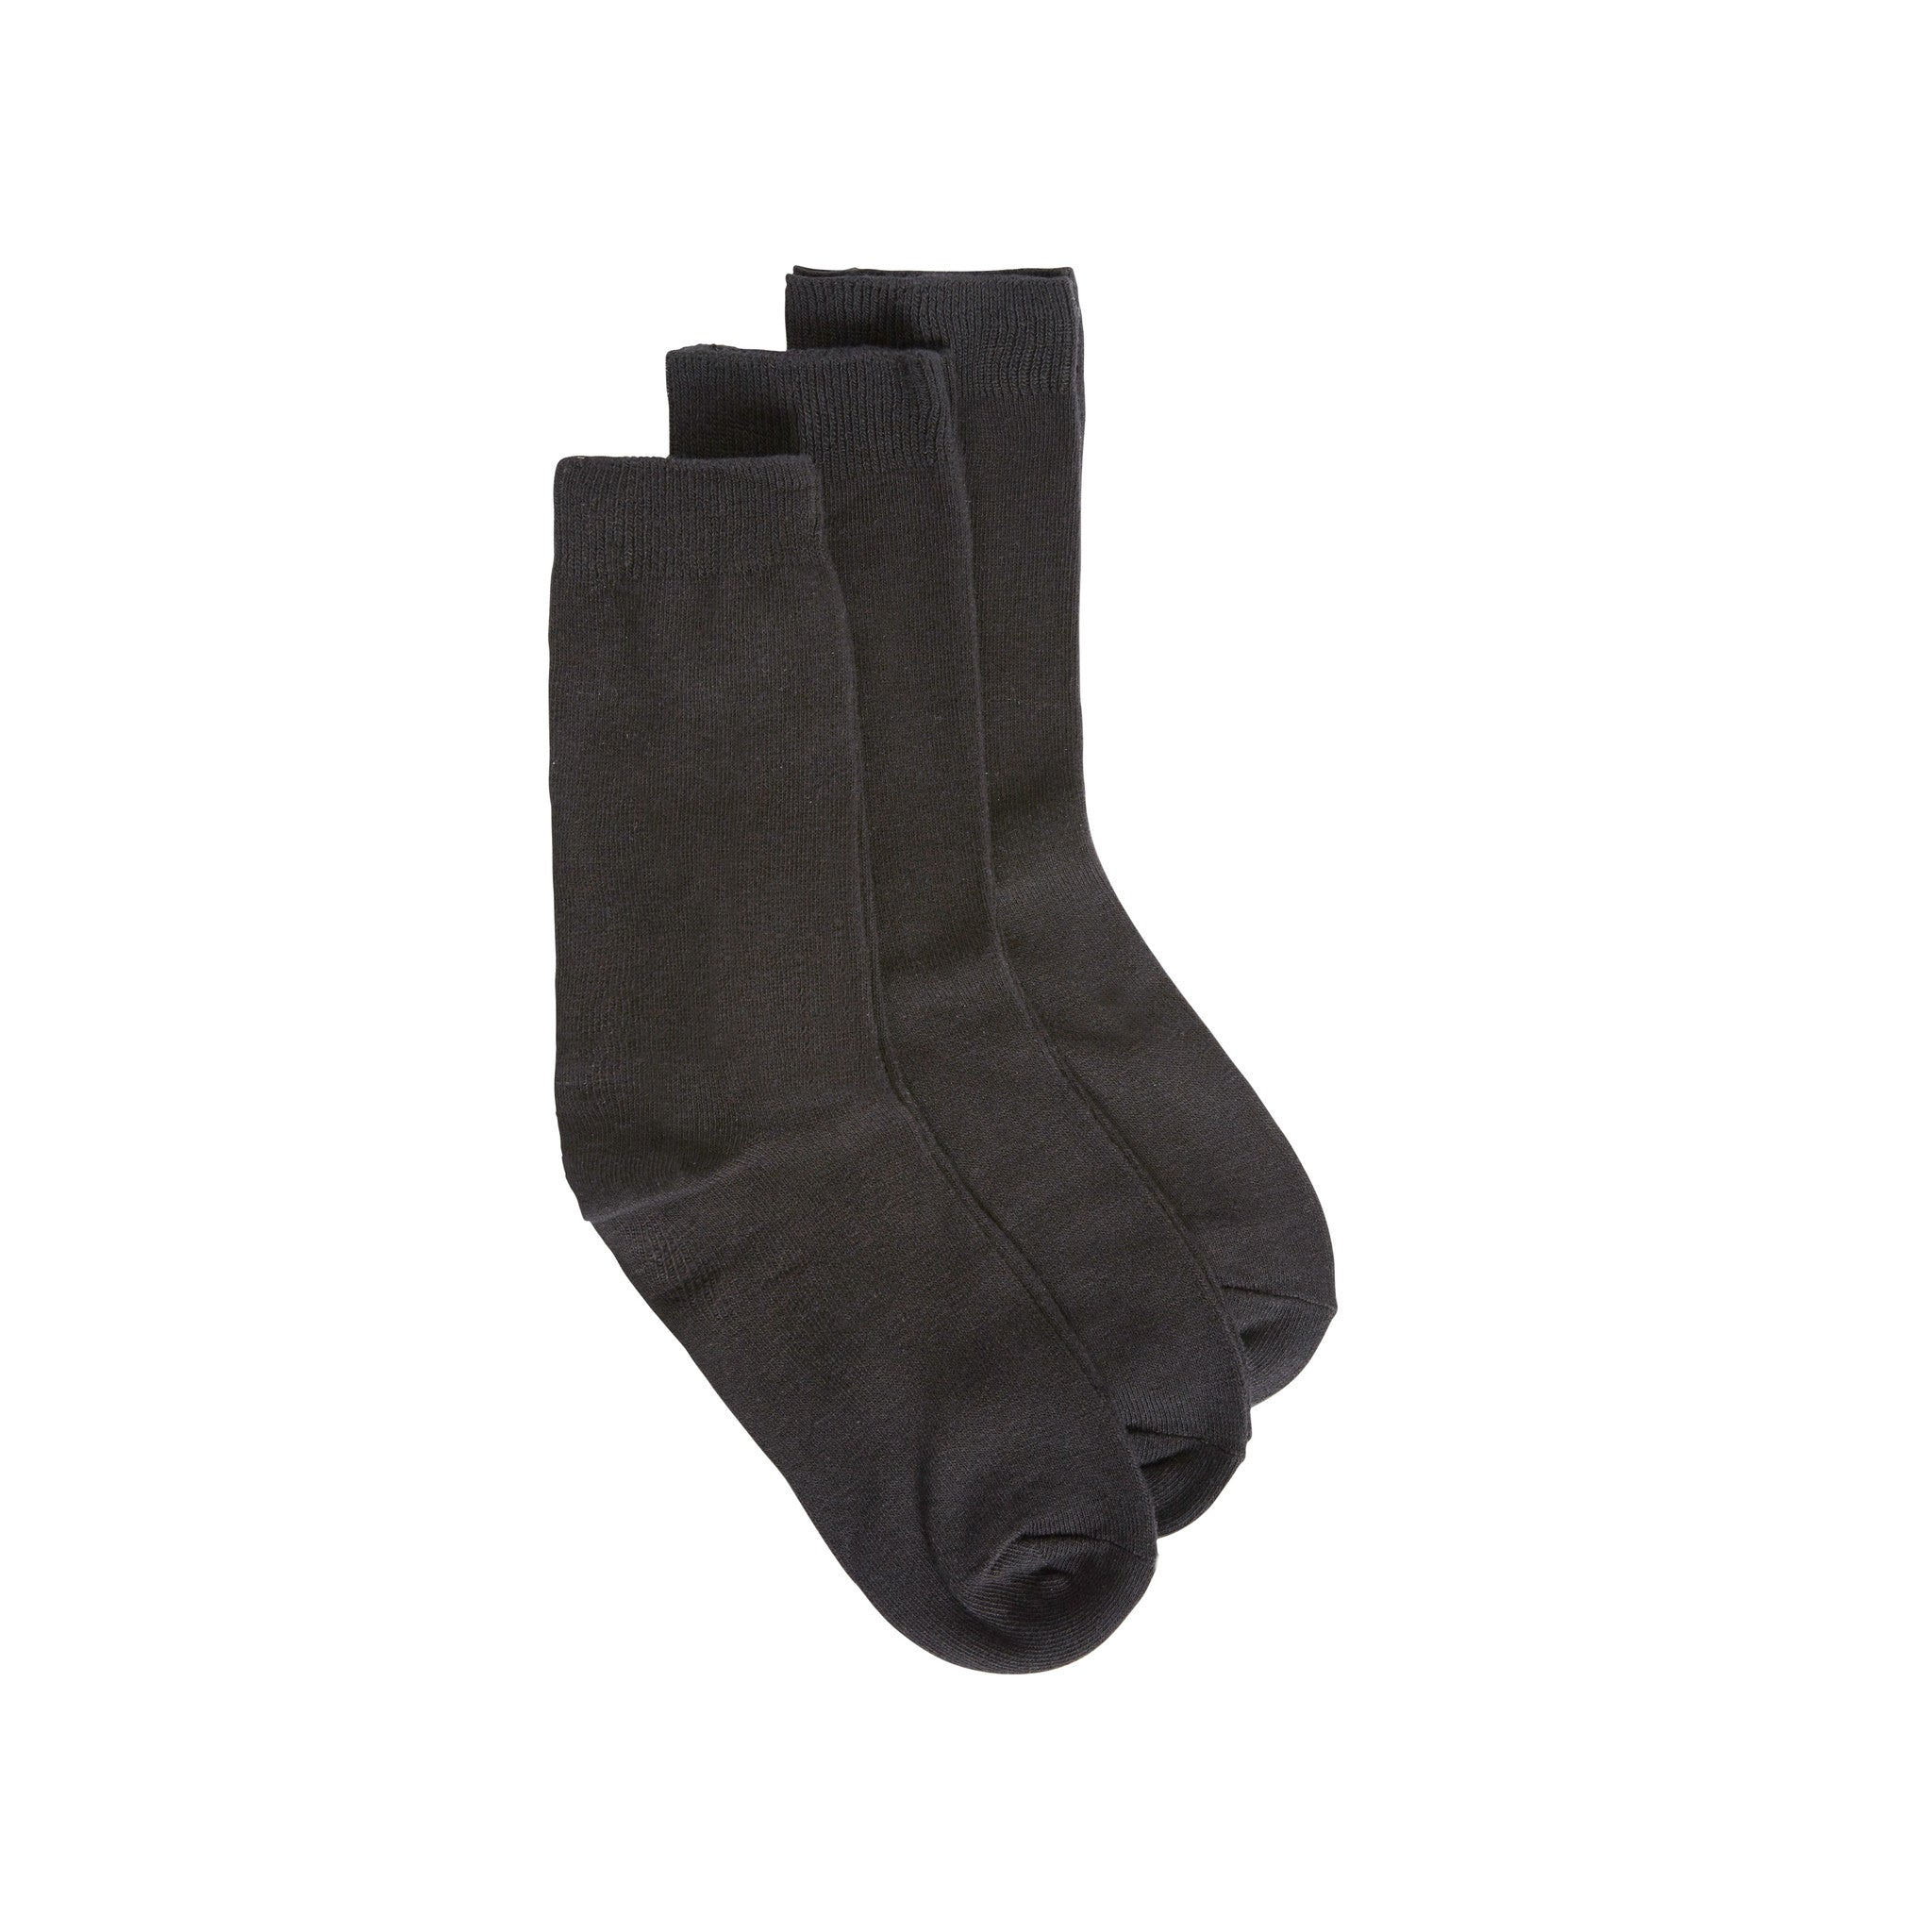 Black Ankle Socks 3 Pack